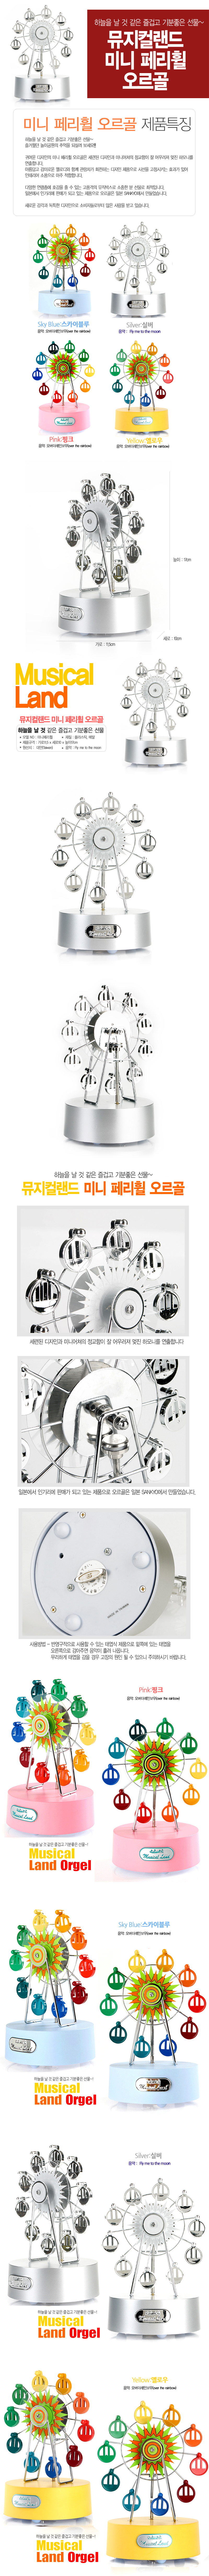 Musical Land Rotating Ferris Wheel Music Box 뮤지컬랜드 미니 관람차 오르골